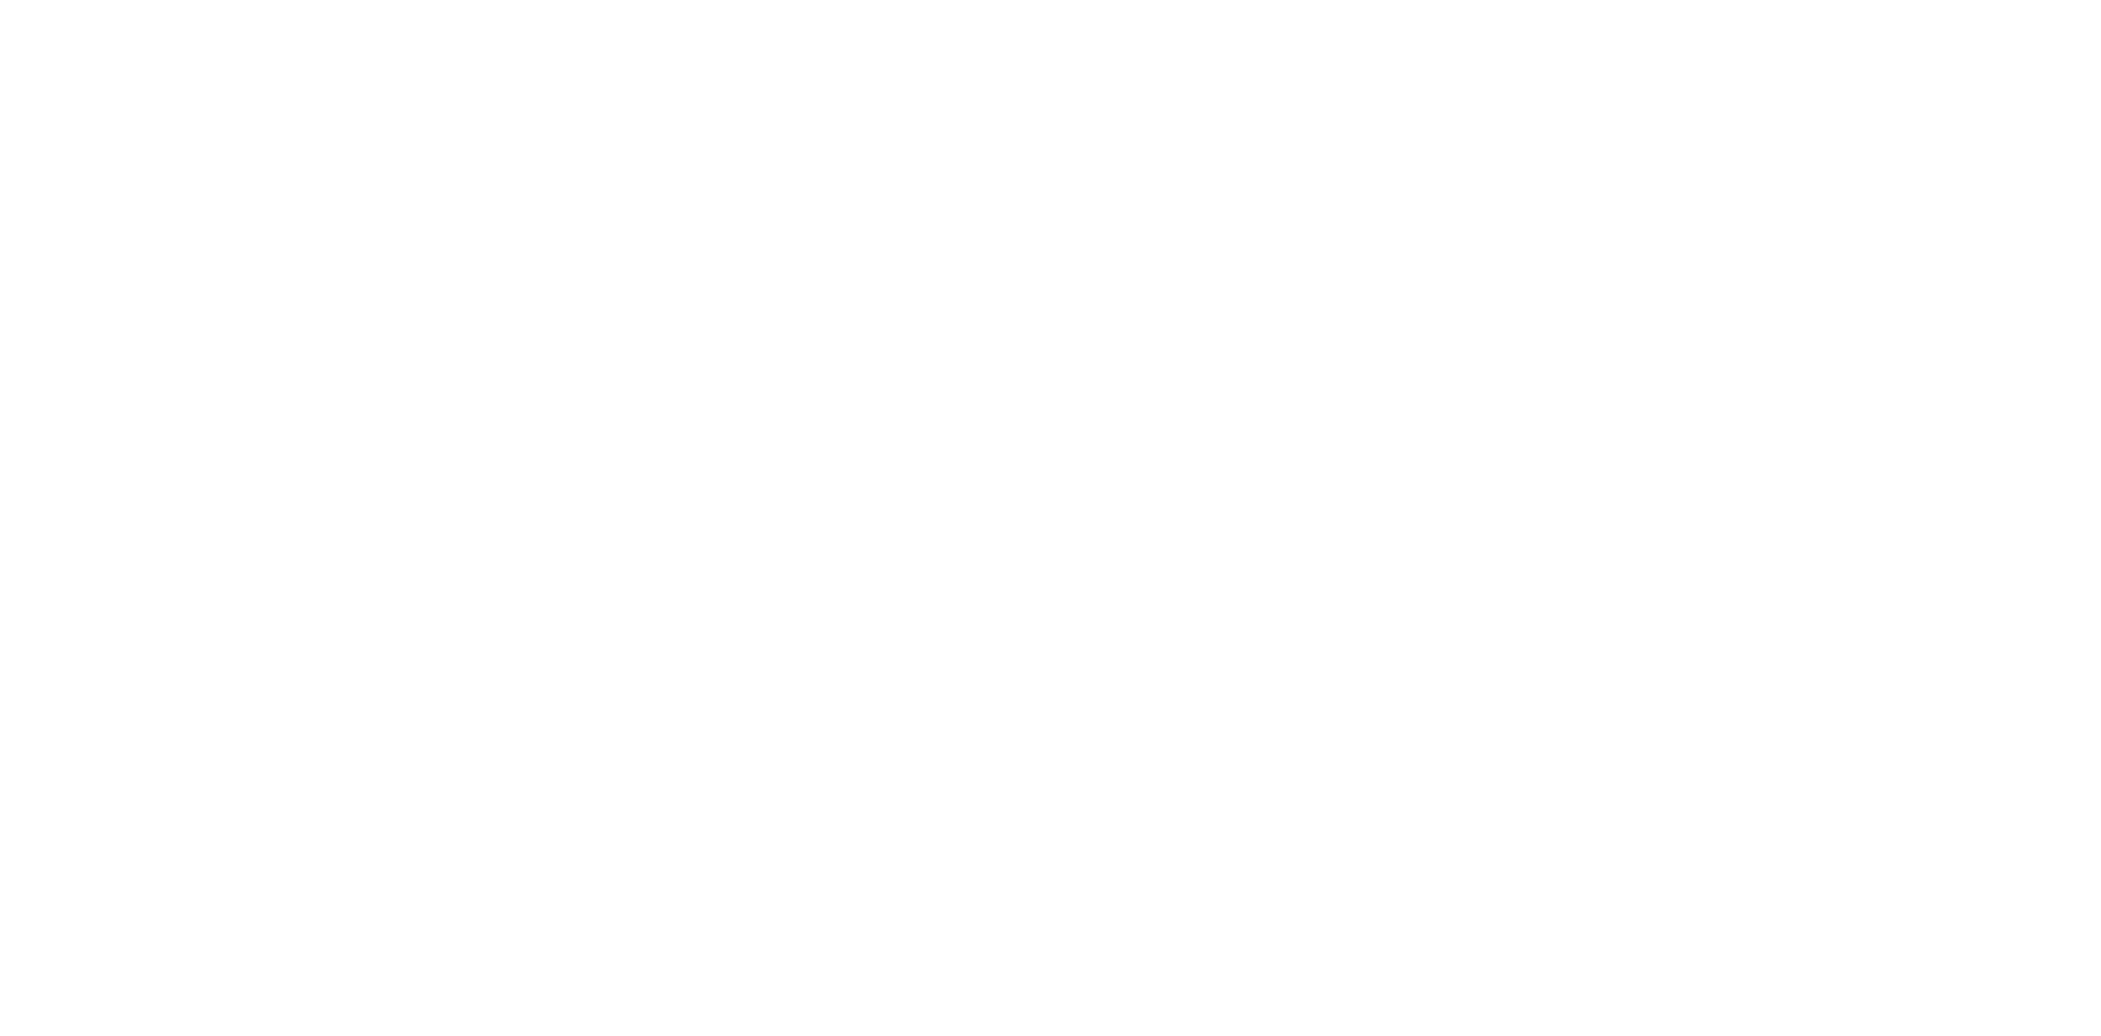 Surfrider Foundation Georgia